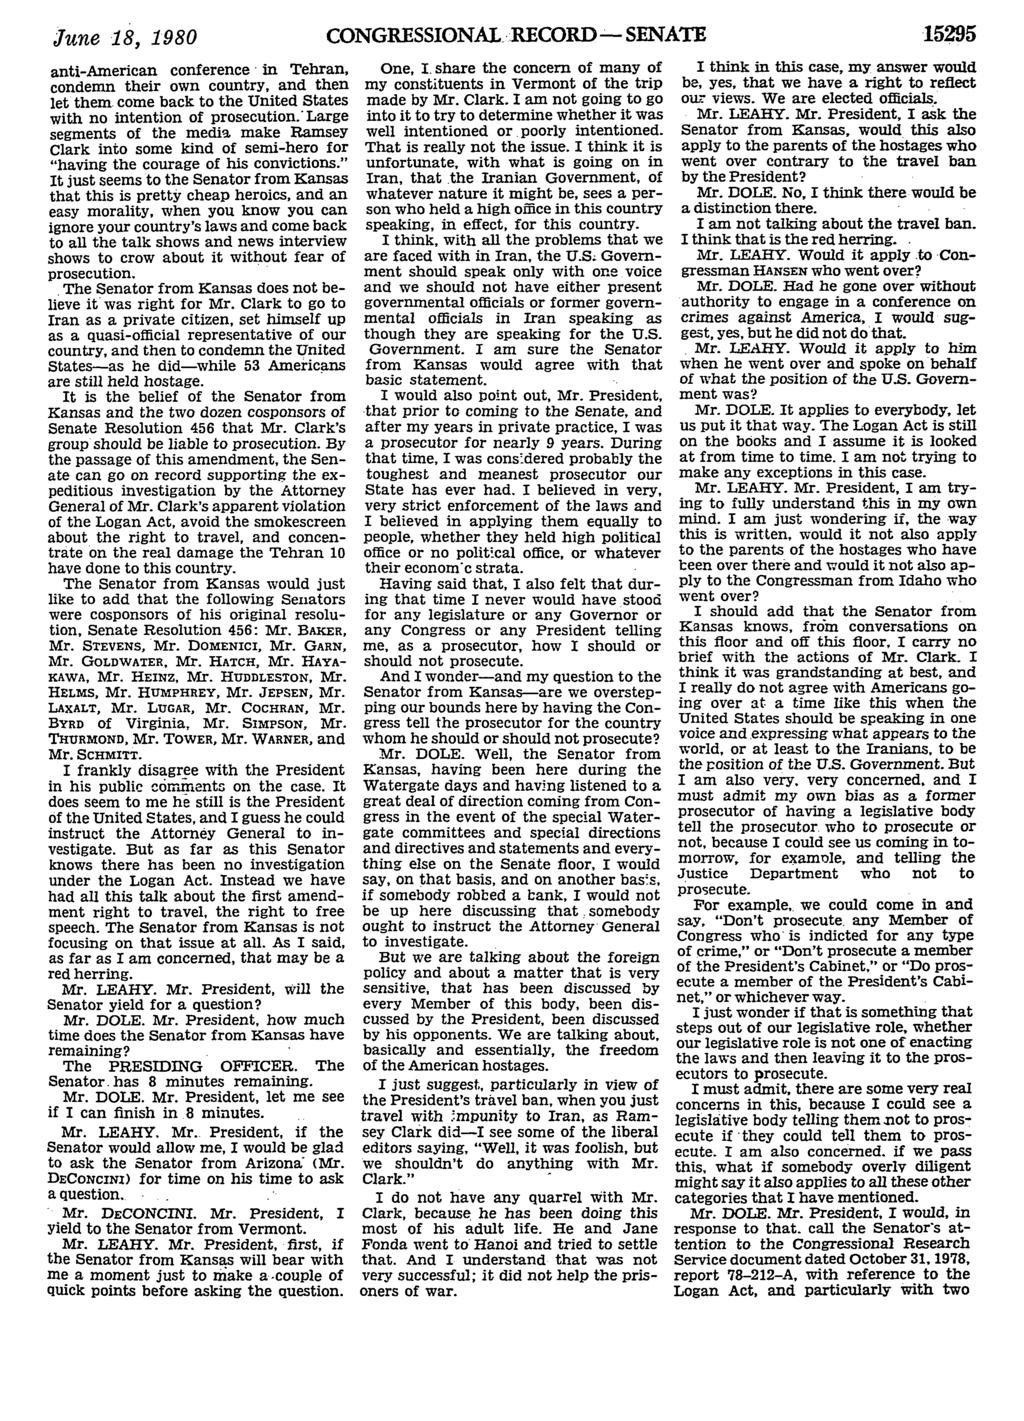 June 18, 1980 CONGRESSIONAL RECORD- SENATE anti-american conference in Tehran, condemn their own country, then let them come back to the United States with no intention of prosecution.